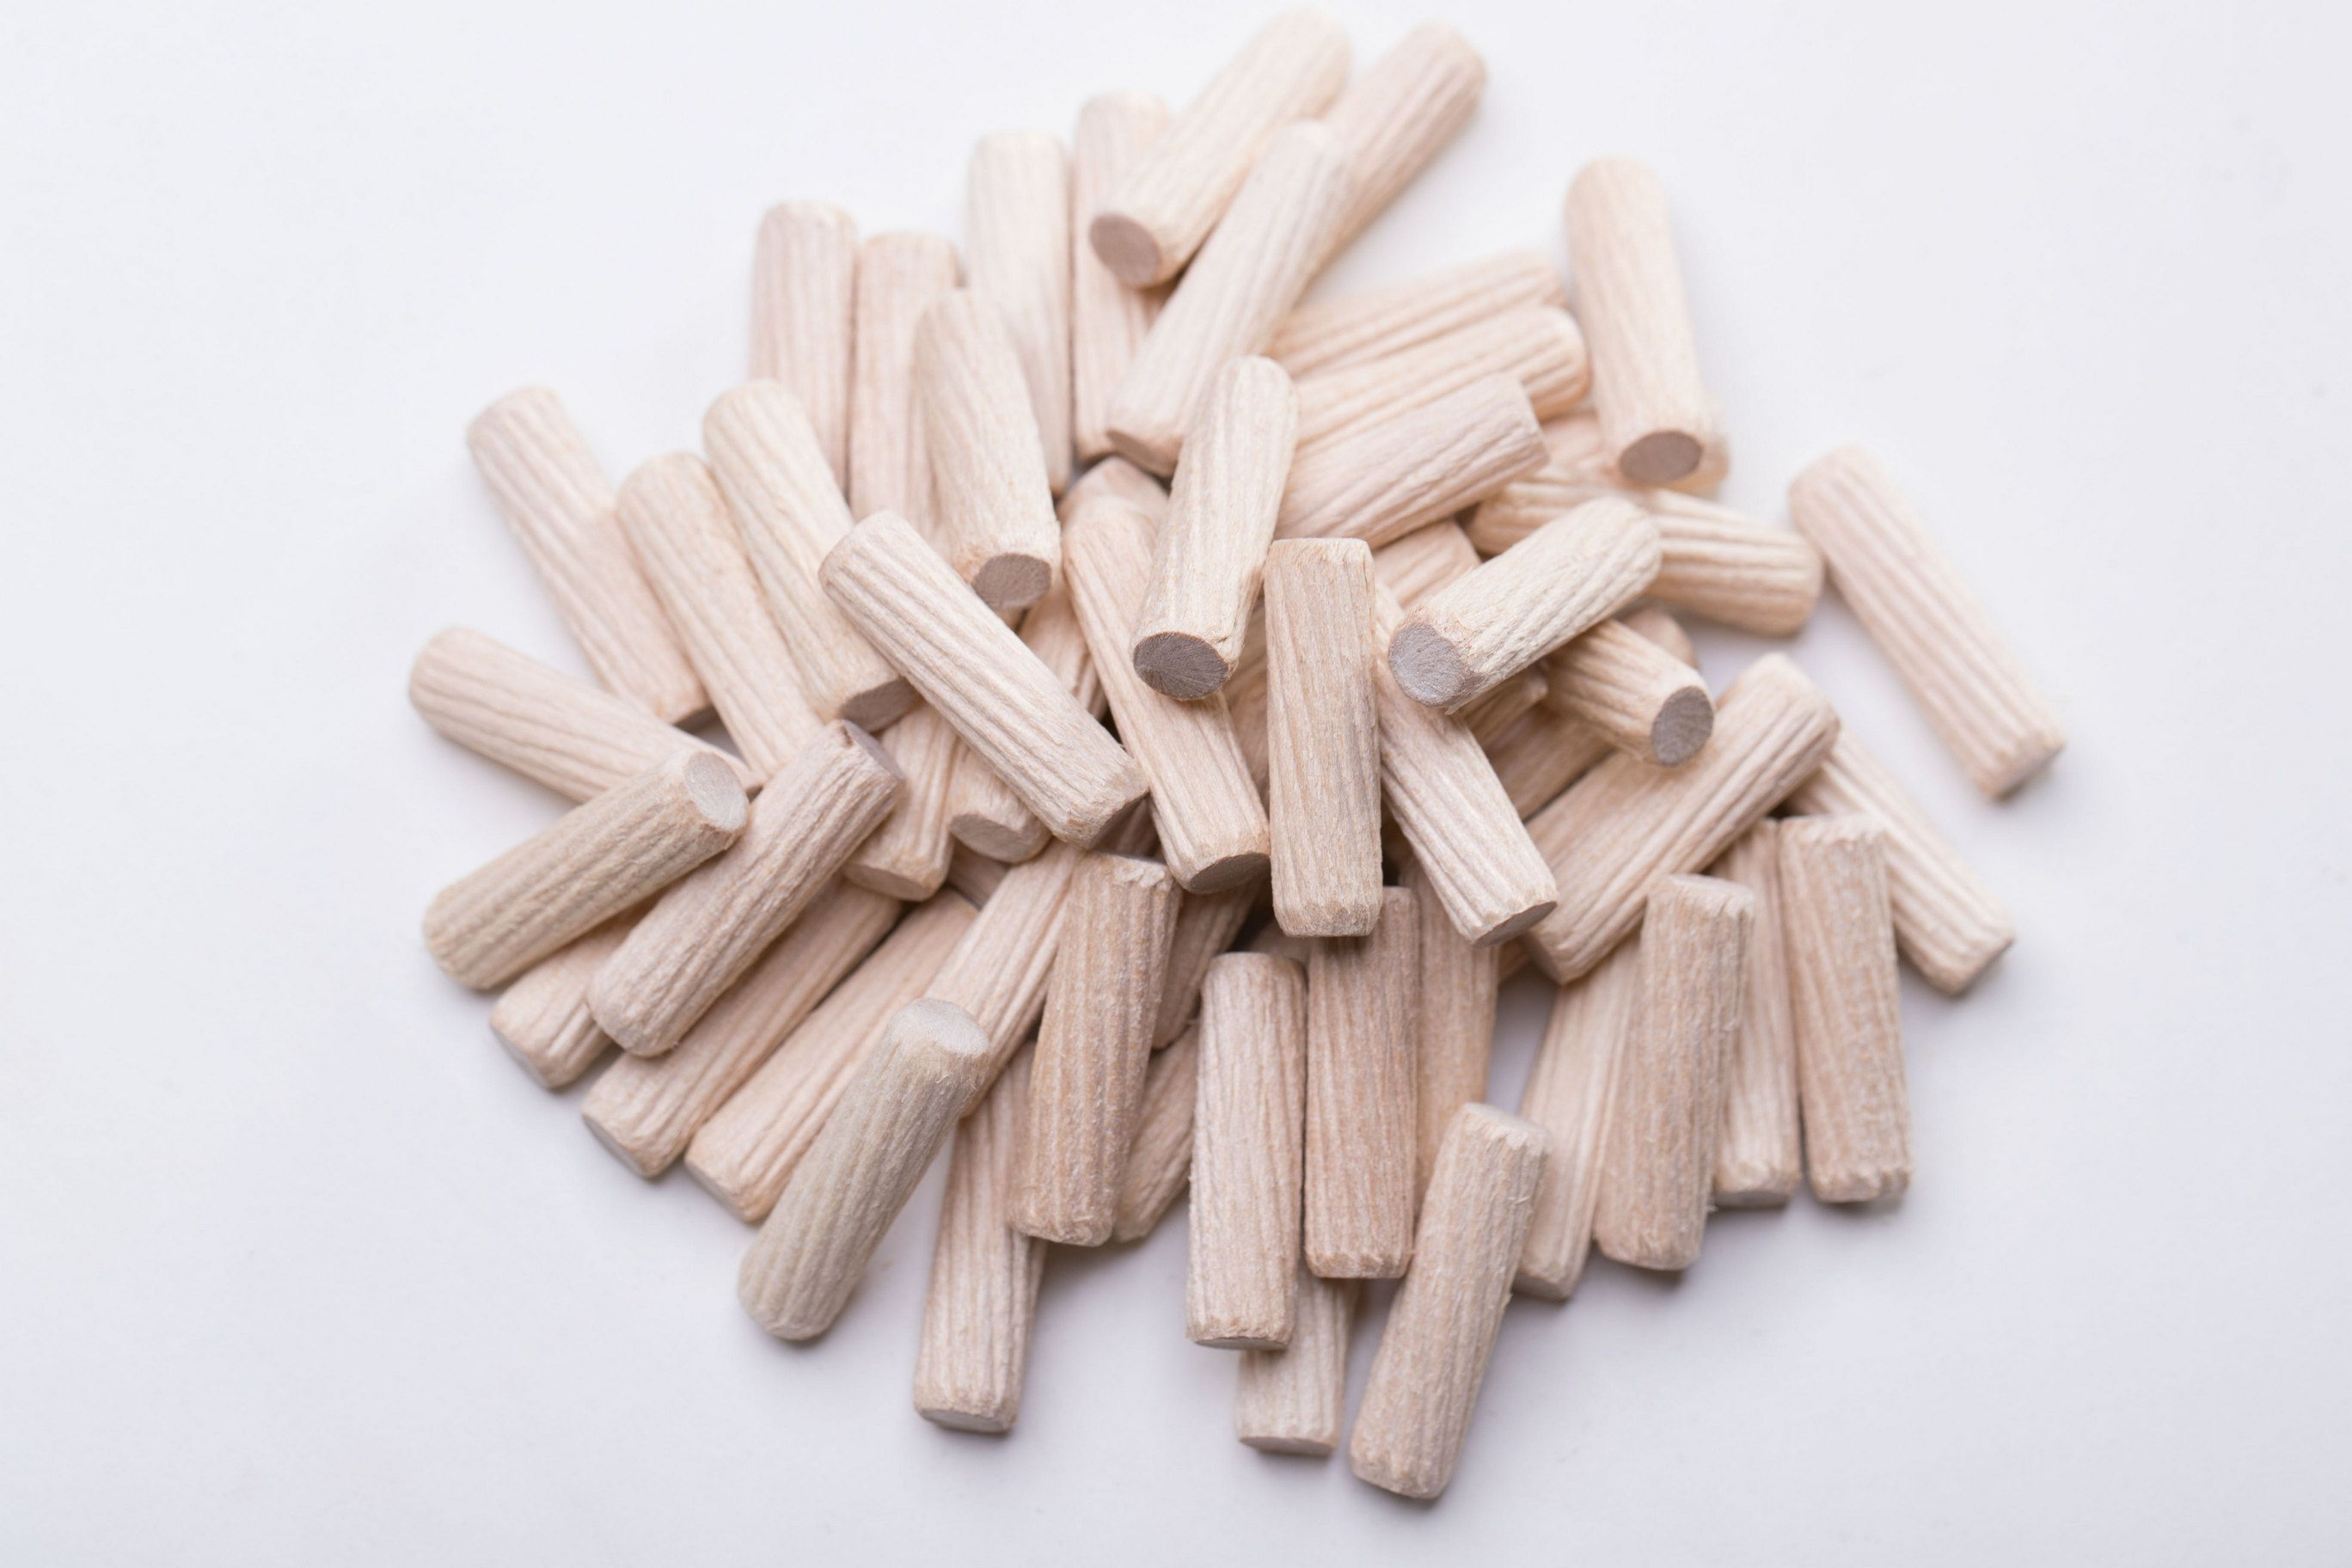 Wooden Dowel Made Of Wood Of Birch Ribbed Surface Beveled Edges The Length Of 35 Mm Diameter 8mm Purpose Used As Wood Joinery Furniture Hardware Dowels